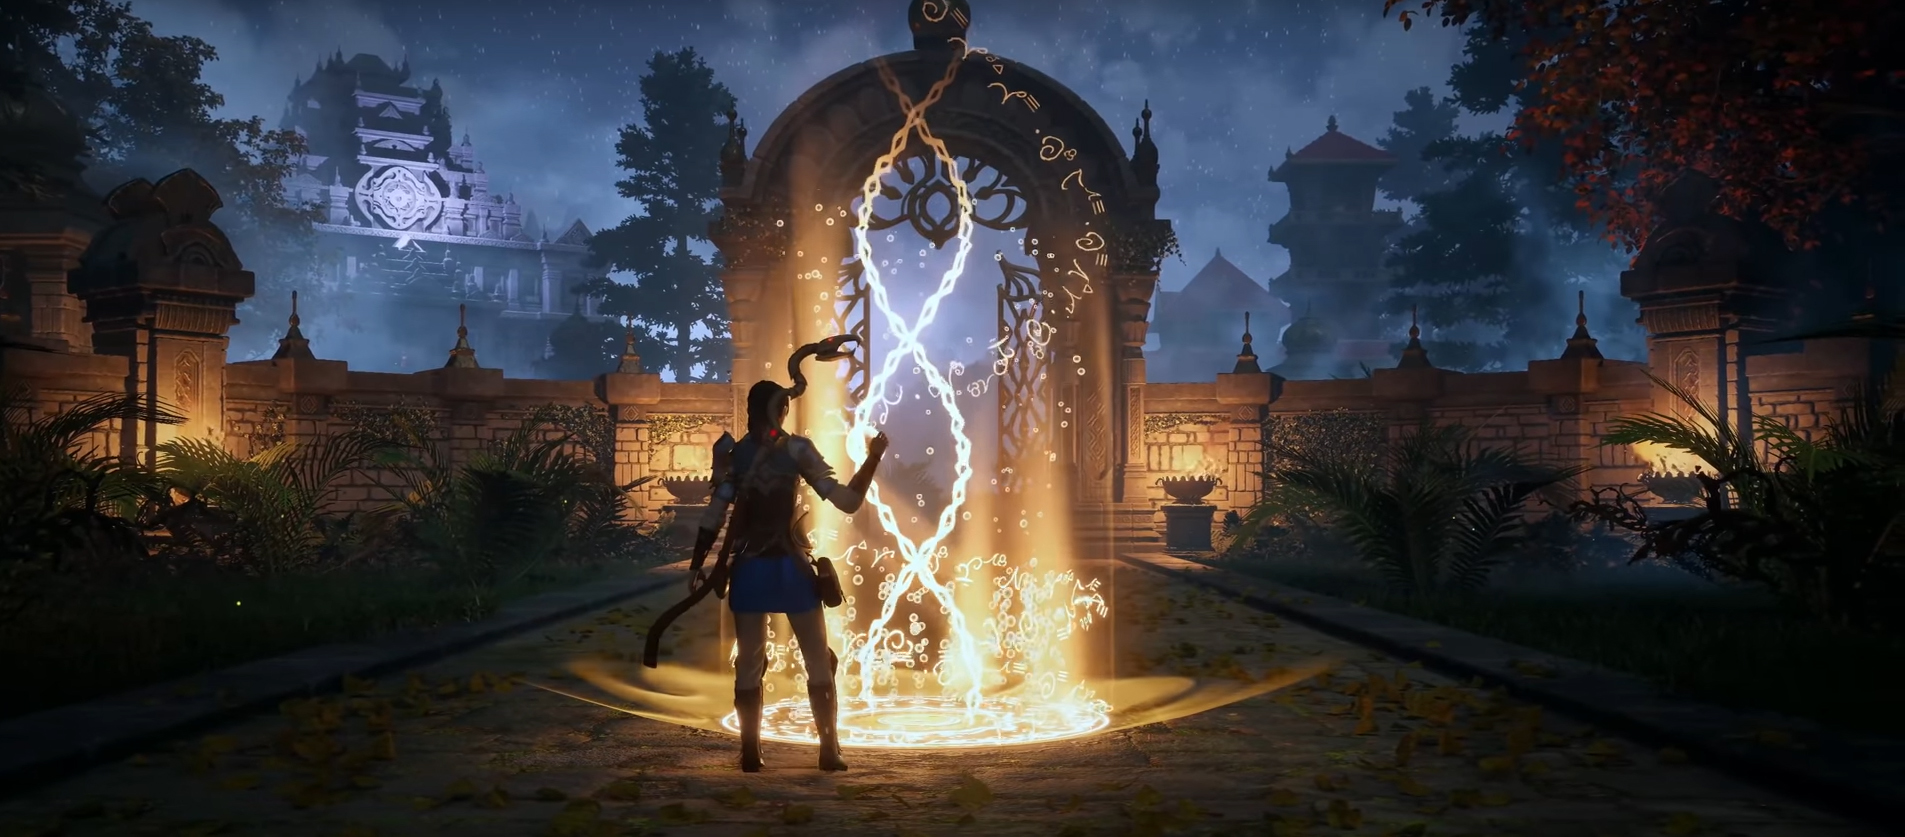 Unreal Engine 5-Powered Time Travel MMORPG Into the Echo Release Teaser